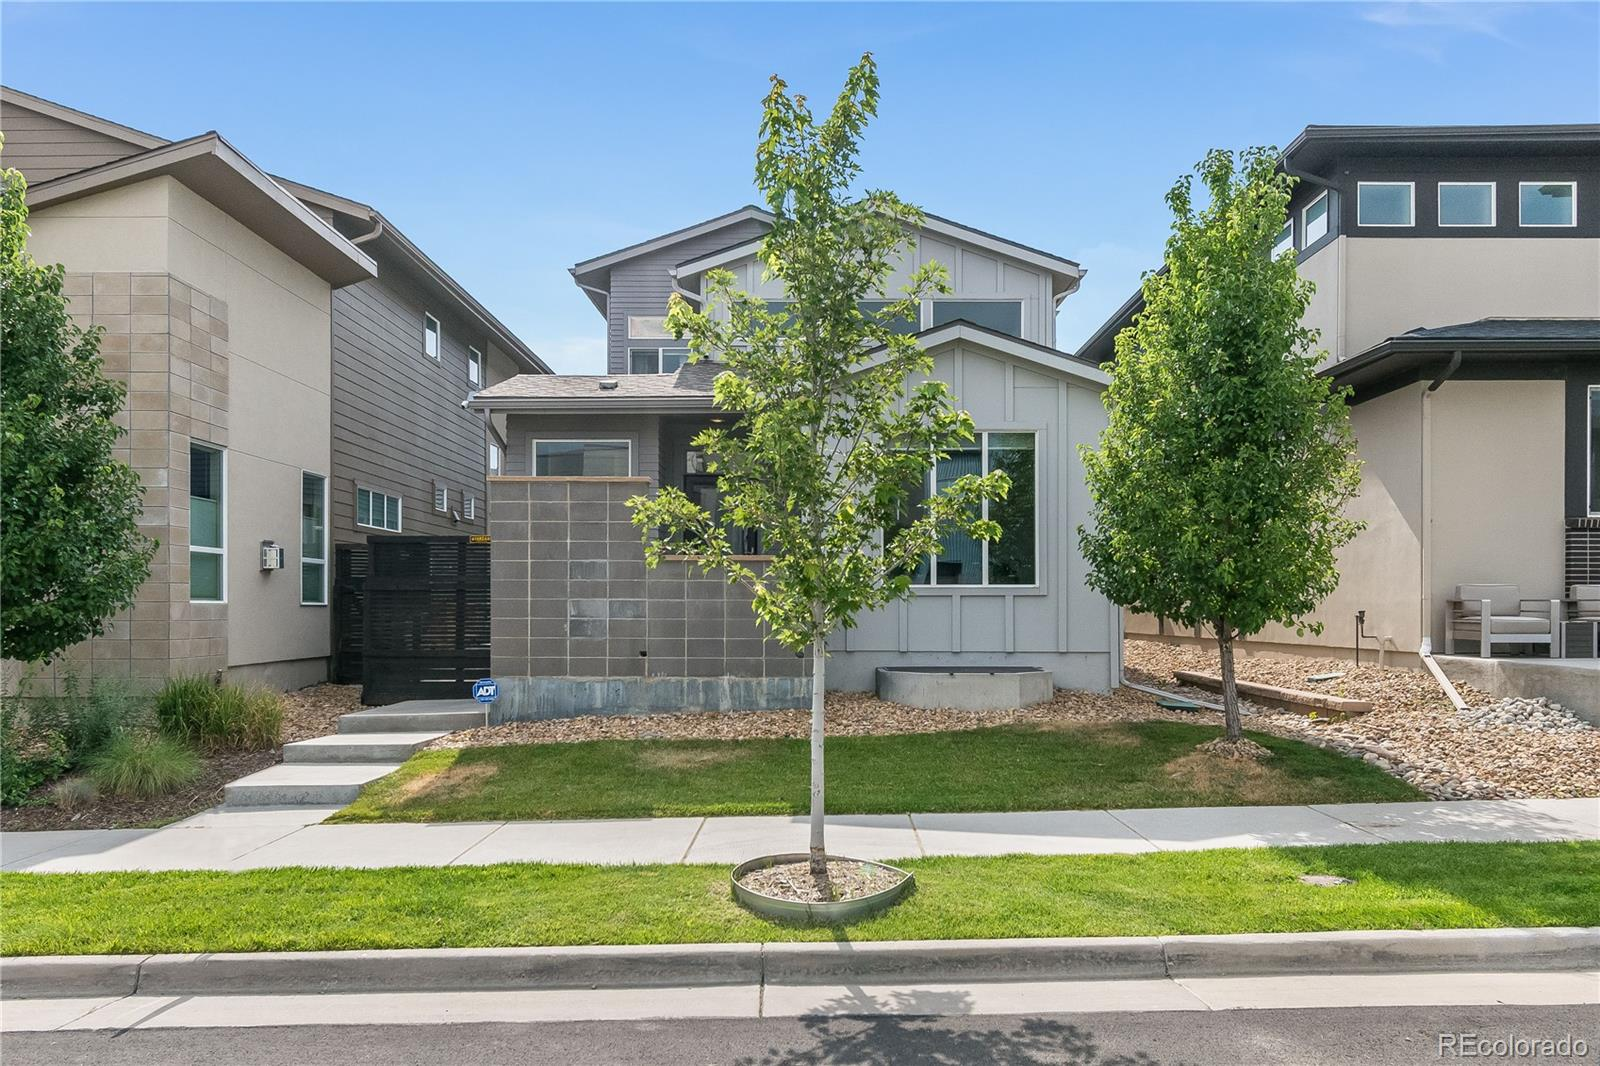 MLS# 4481467 - 3 - 6641 Alan Drive, Denver, CO 80221